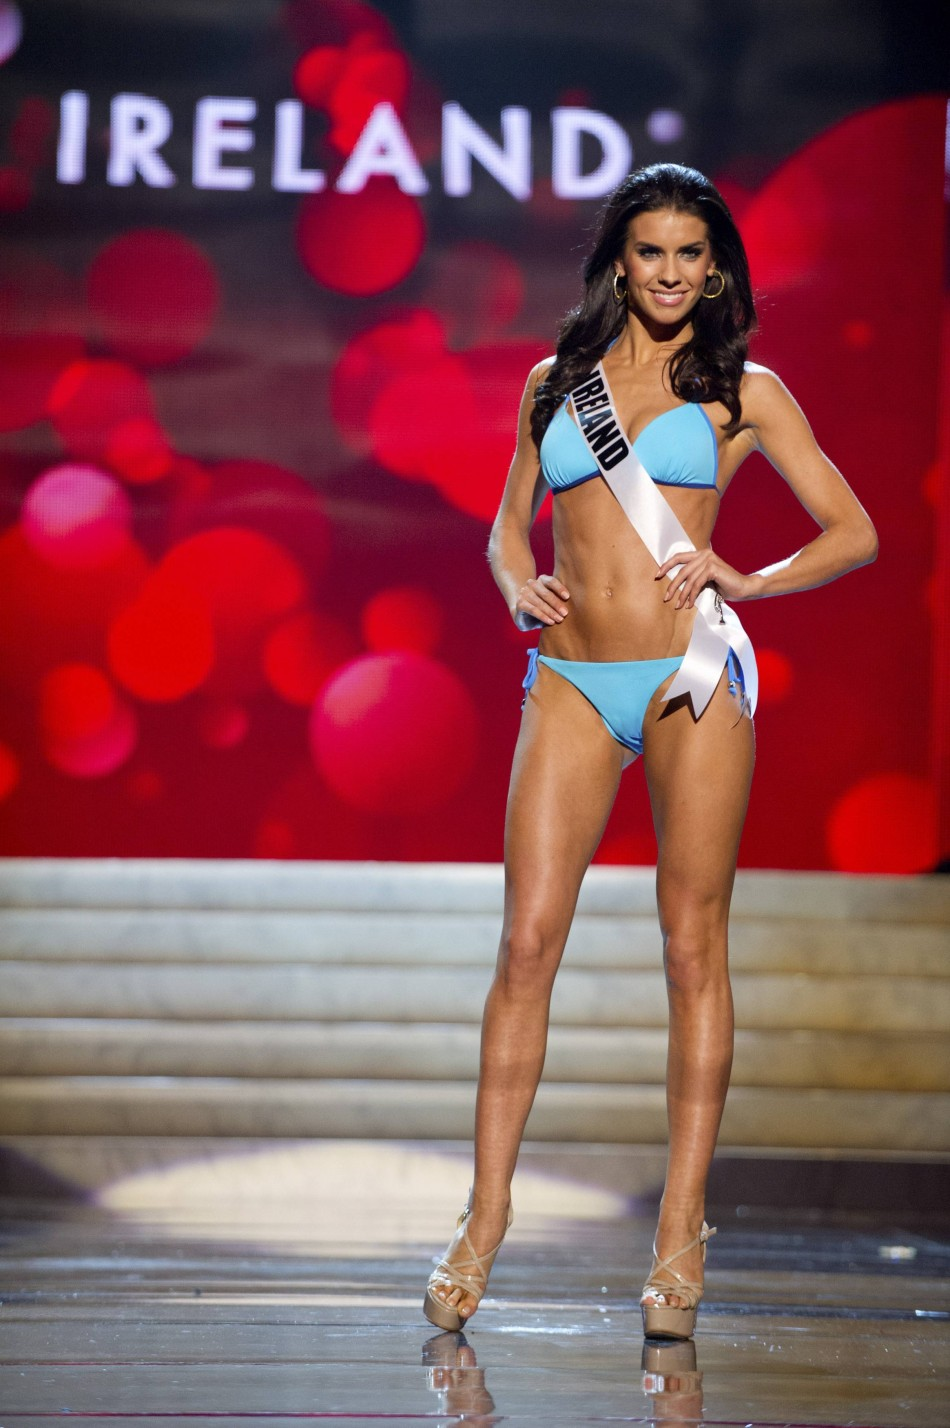 Miss Ireland Adrienne Murphy at the Swimsuit Competition of the 2012 Miss Universe Presentation Show at PH Live in Las Vegas